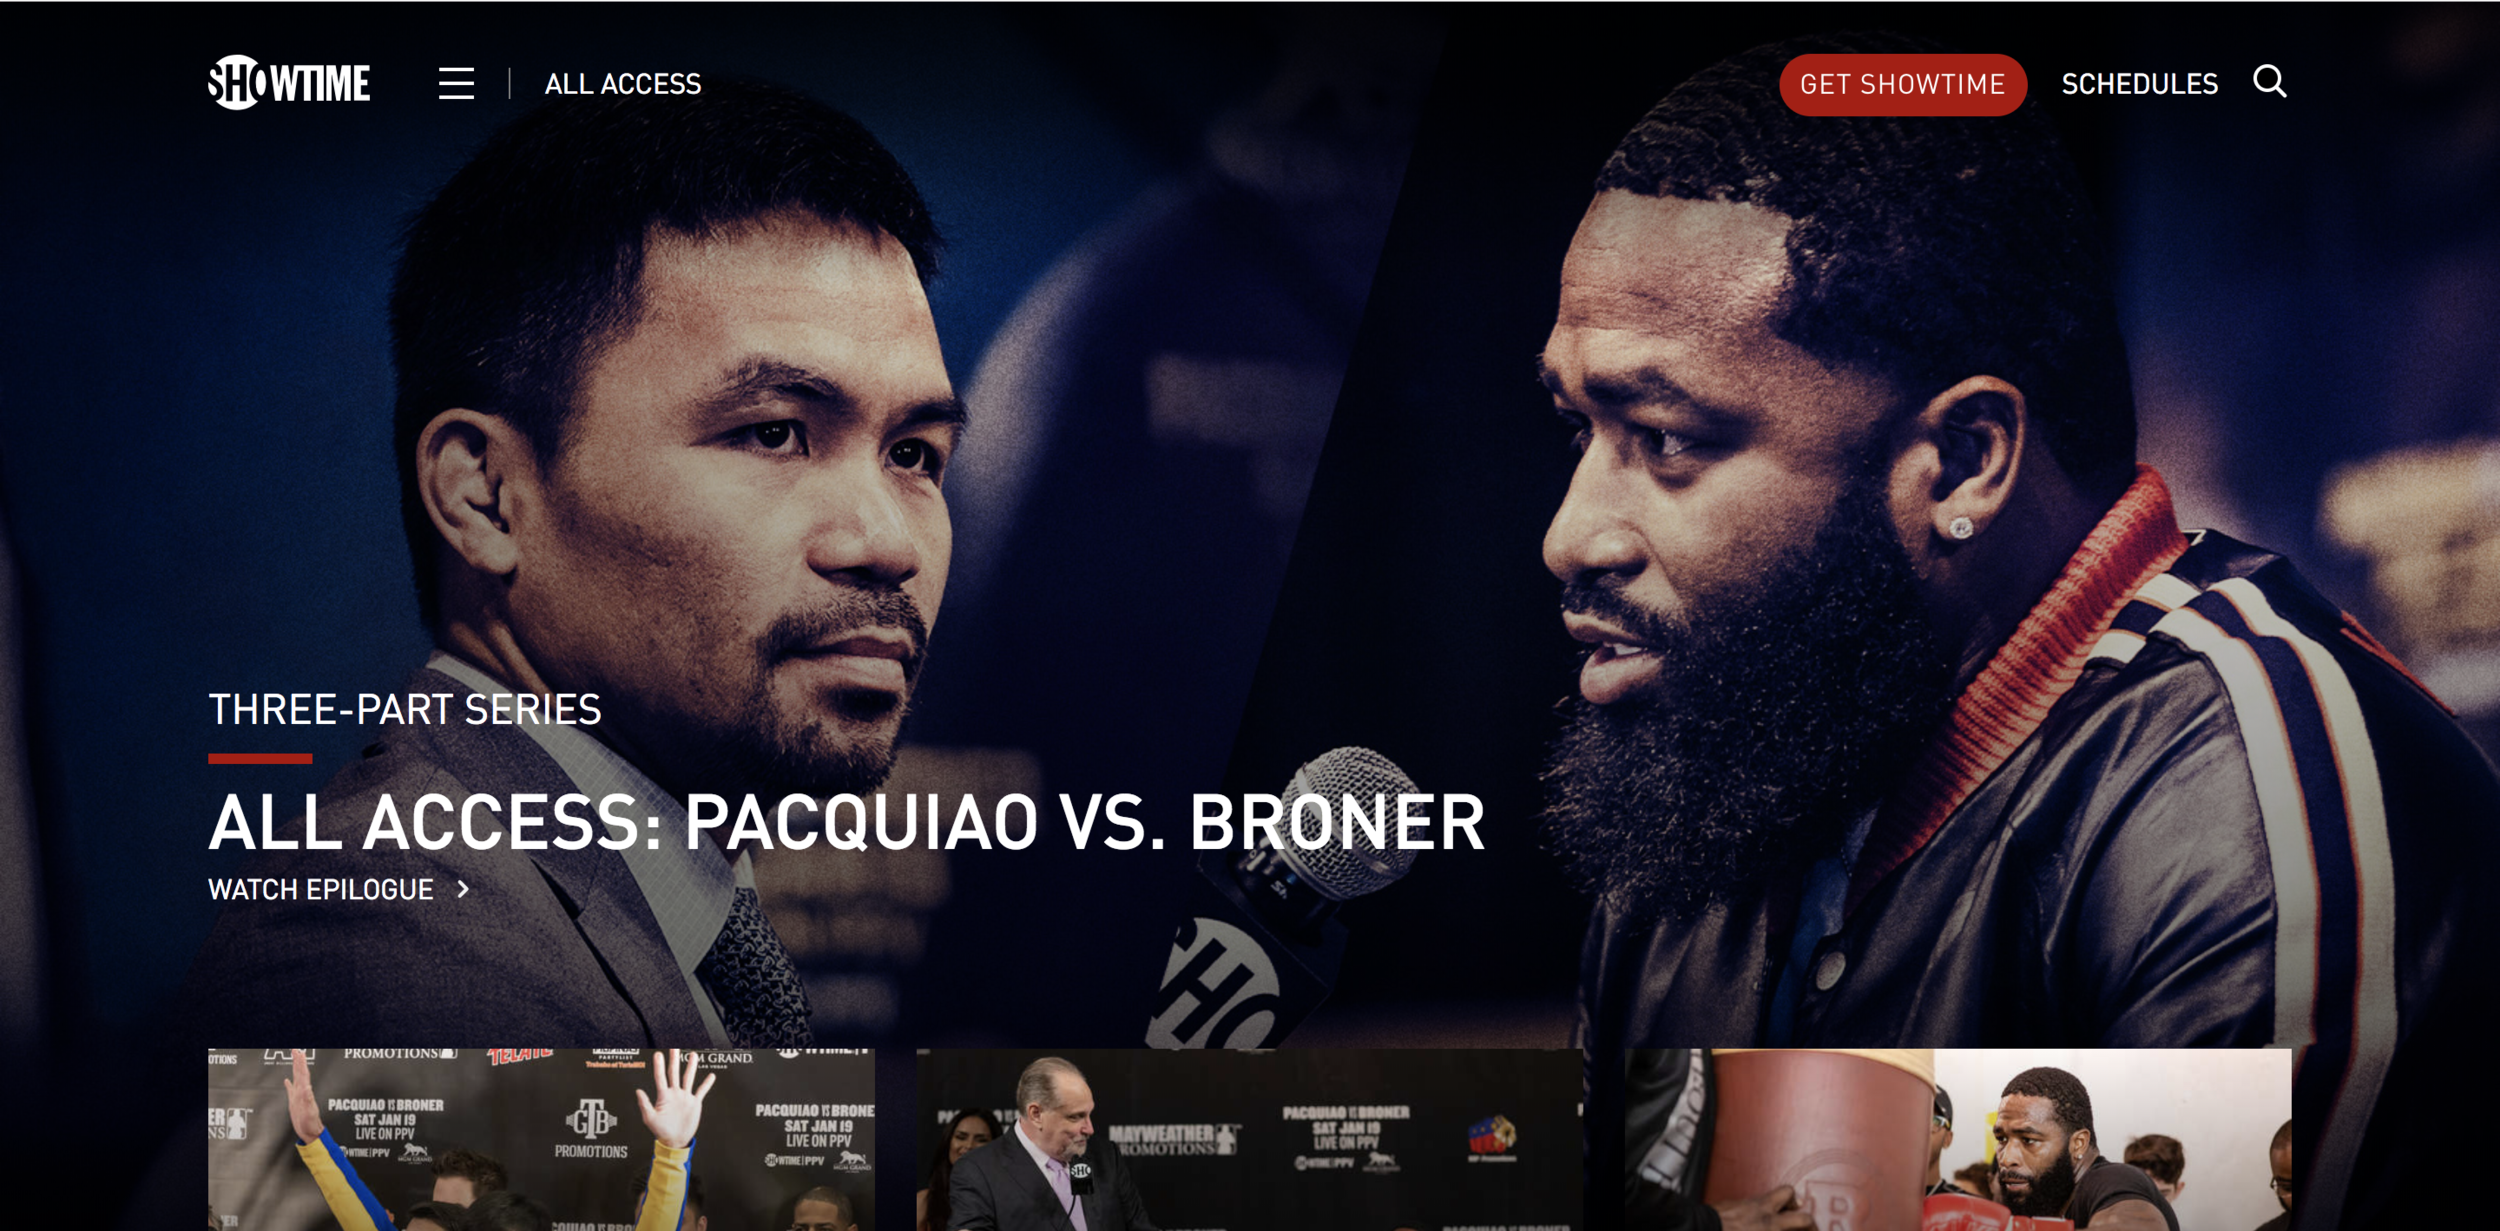 Hero image for All Access: Pacquiao vs. Broner featured on Sho.com